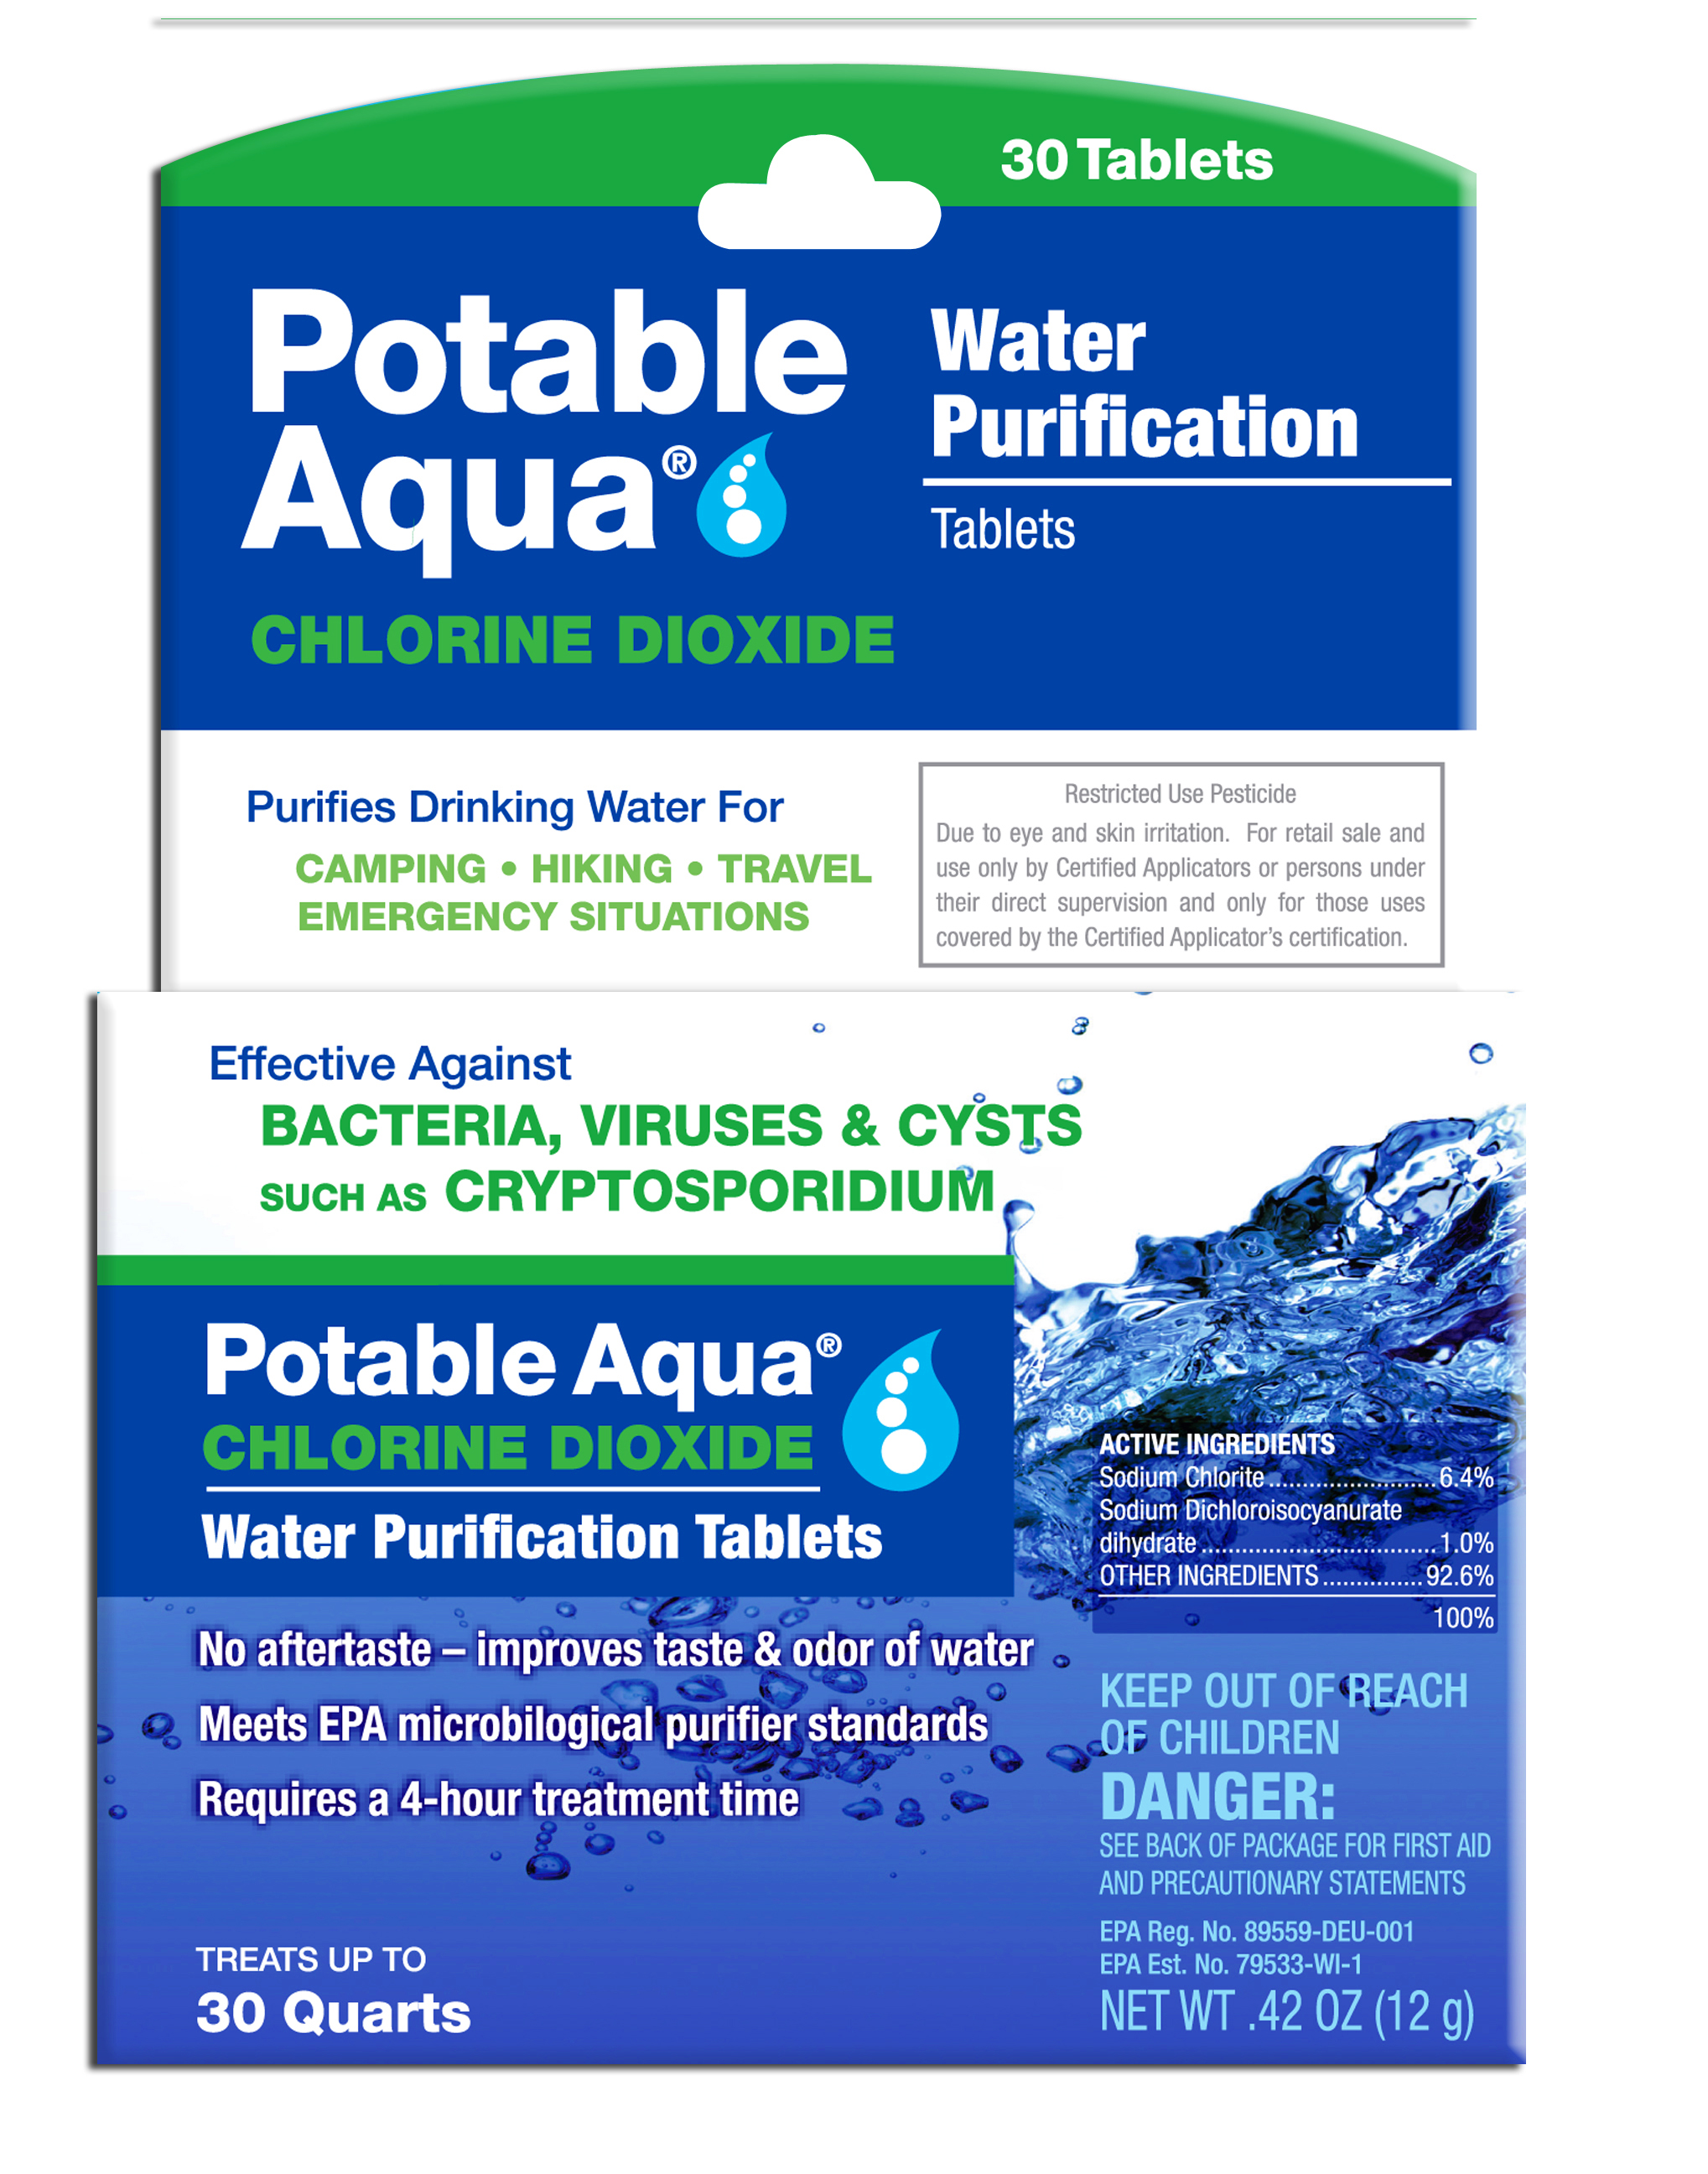 3093 - WPC Potable Aqua Chlorine Dioxide Tablets - 30 Pack